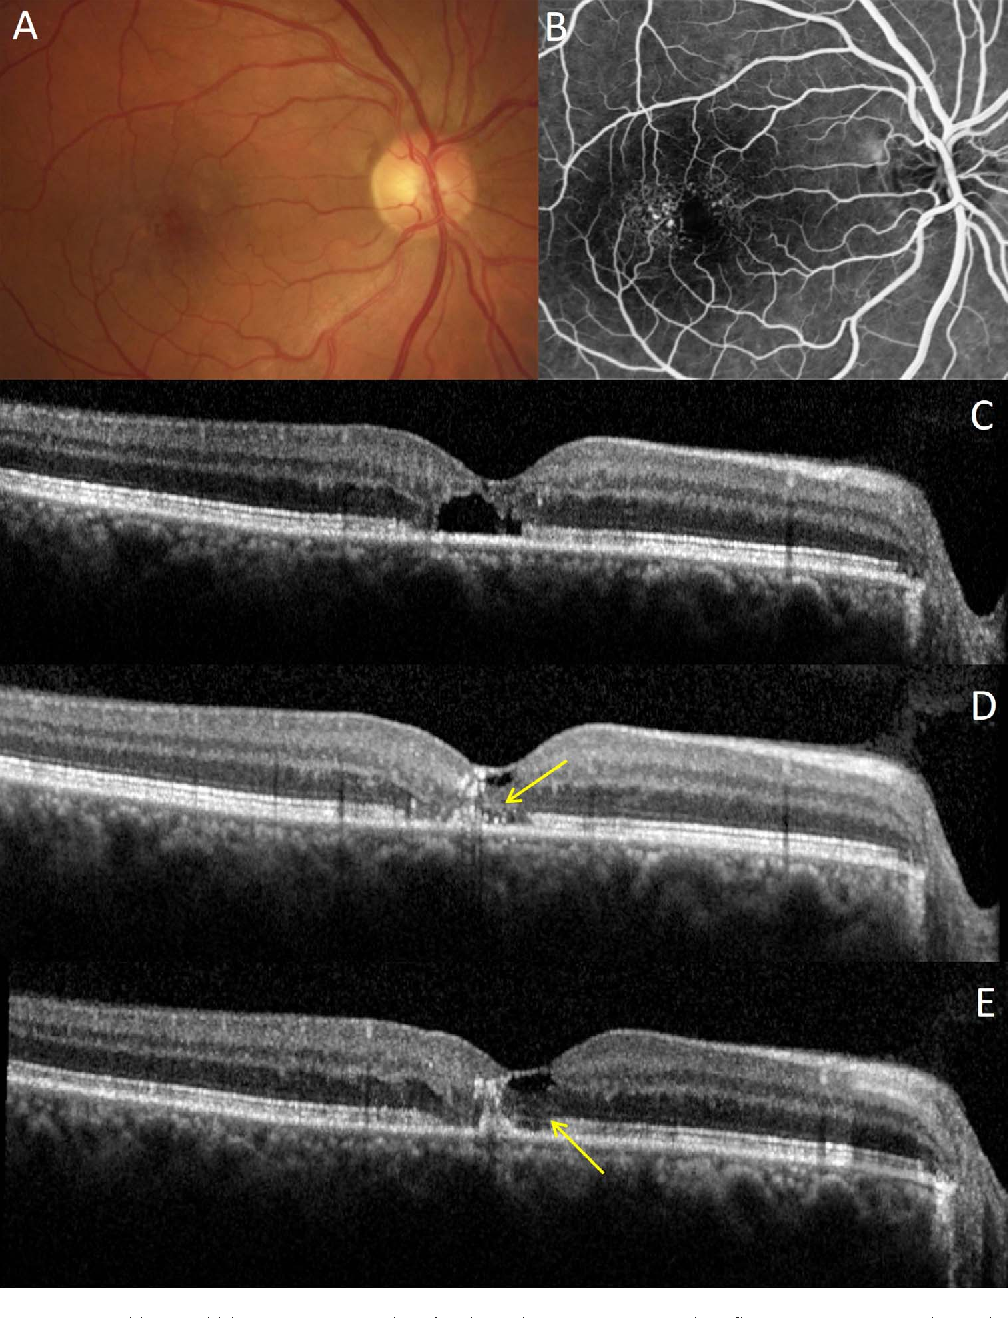 FIGURE 8. Retinal response to NRT in MacTel patient. (A) Baseline fundus color image. (B) Baseline fluorescein angiography with typical telangiectasic vessels temporal to fovea. (C) Baseline OCT image with subfoveal cavitation and loss of IS/OS junction line integrity. (D) Partial restoration of outer nuclear layer and external limiting membrane (arrow) at 5 months; (E) at 12 months, the IS/OS junction line became more visible (arrow).